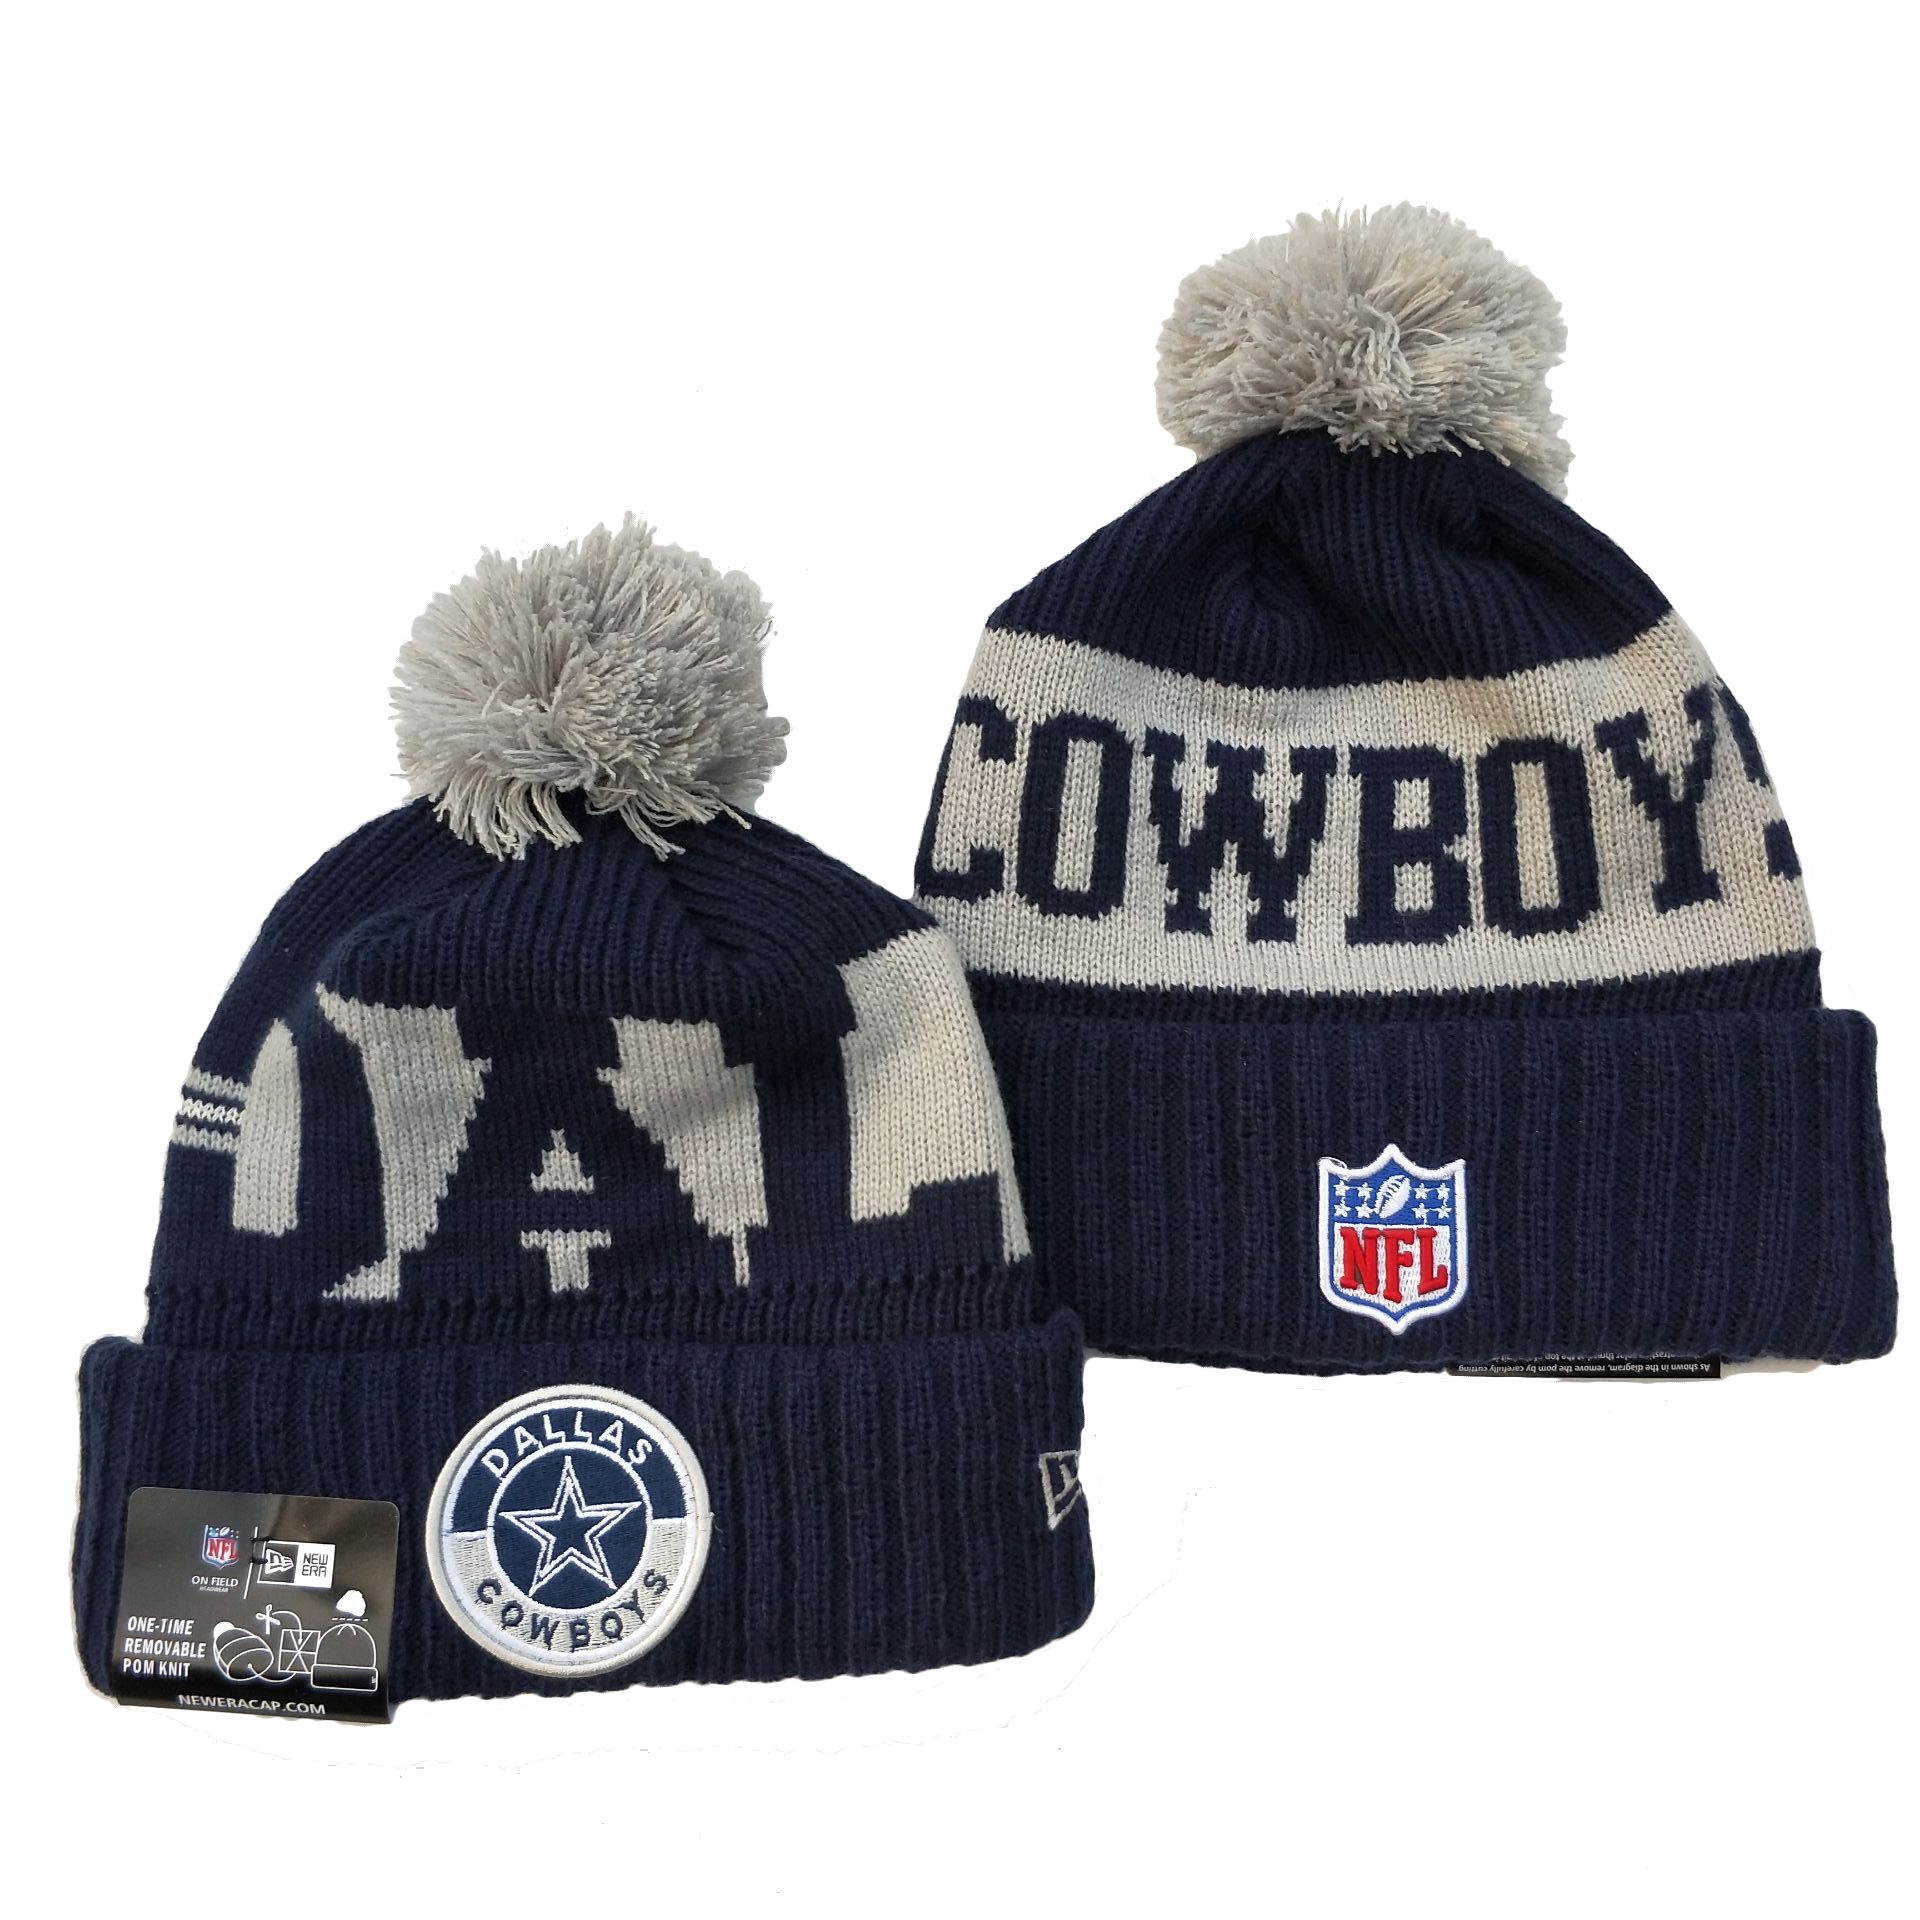 Dallas Cowboys Knit Hats 082